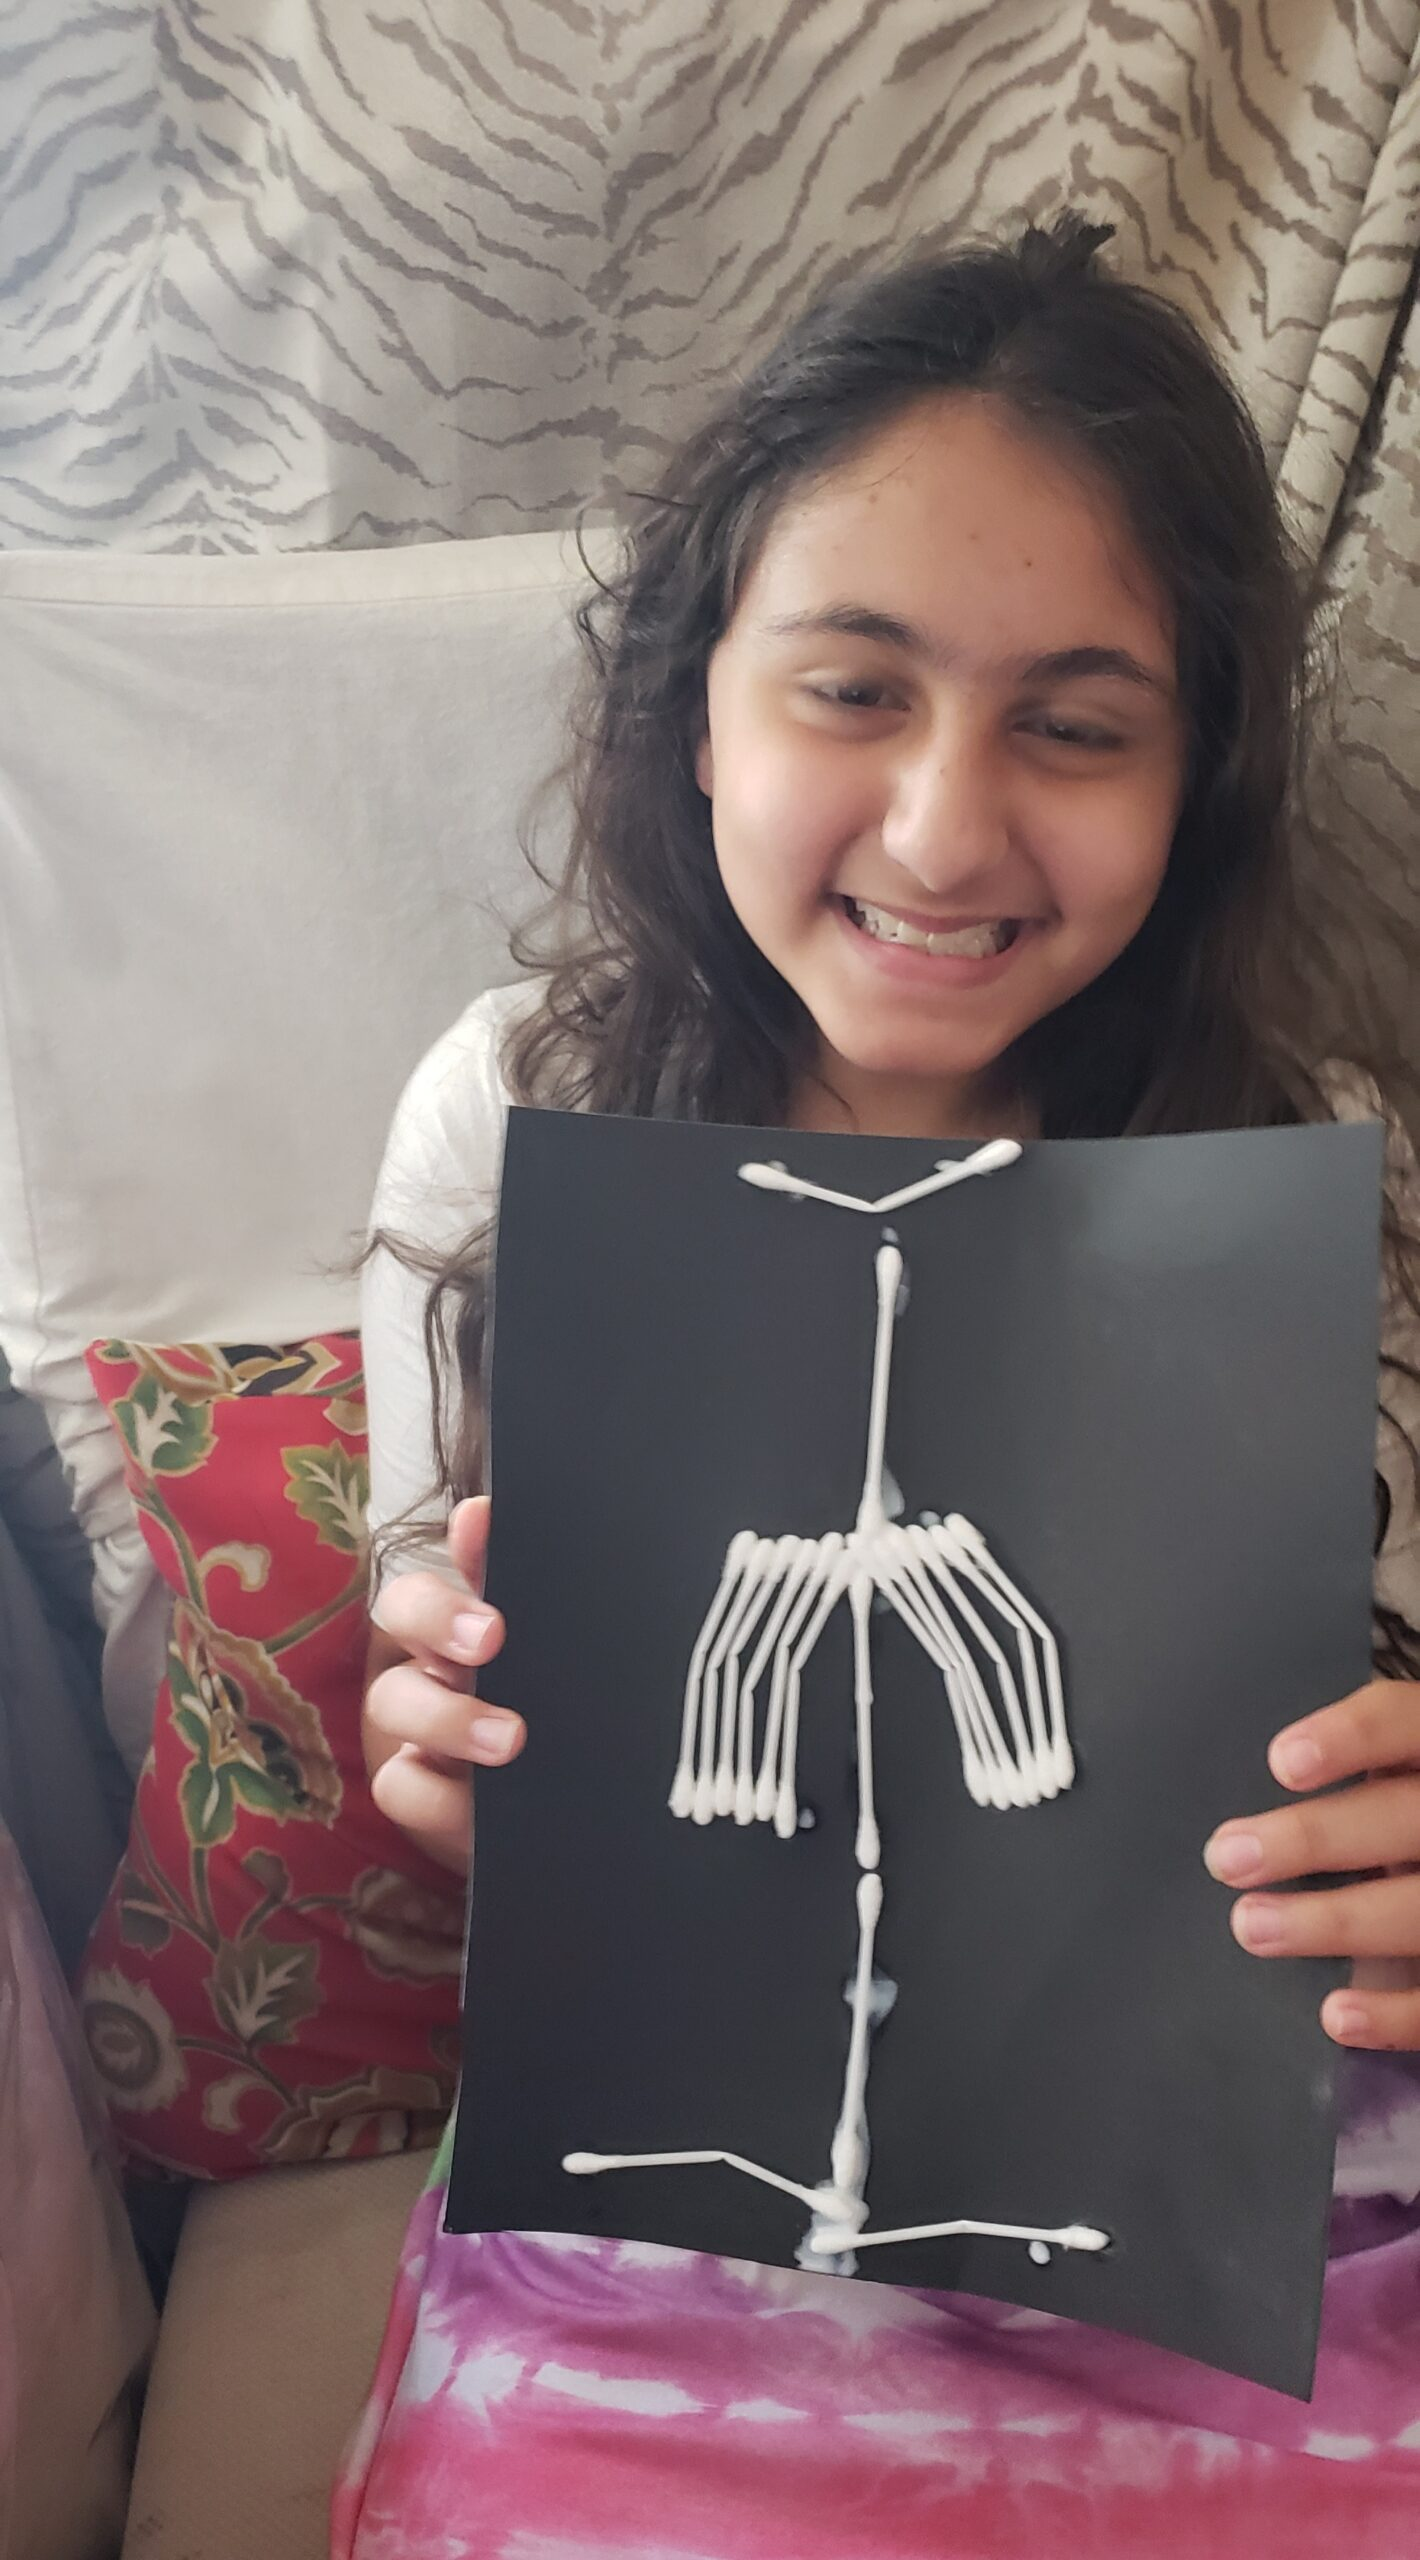 Child posing with x-ray made using household craft materials